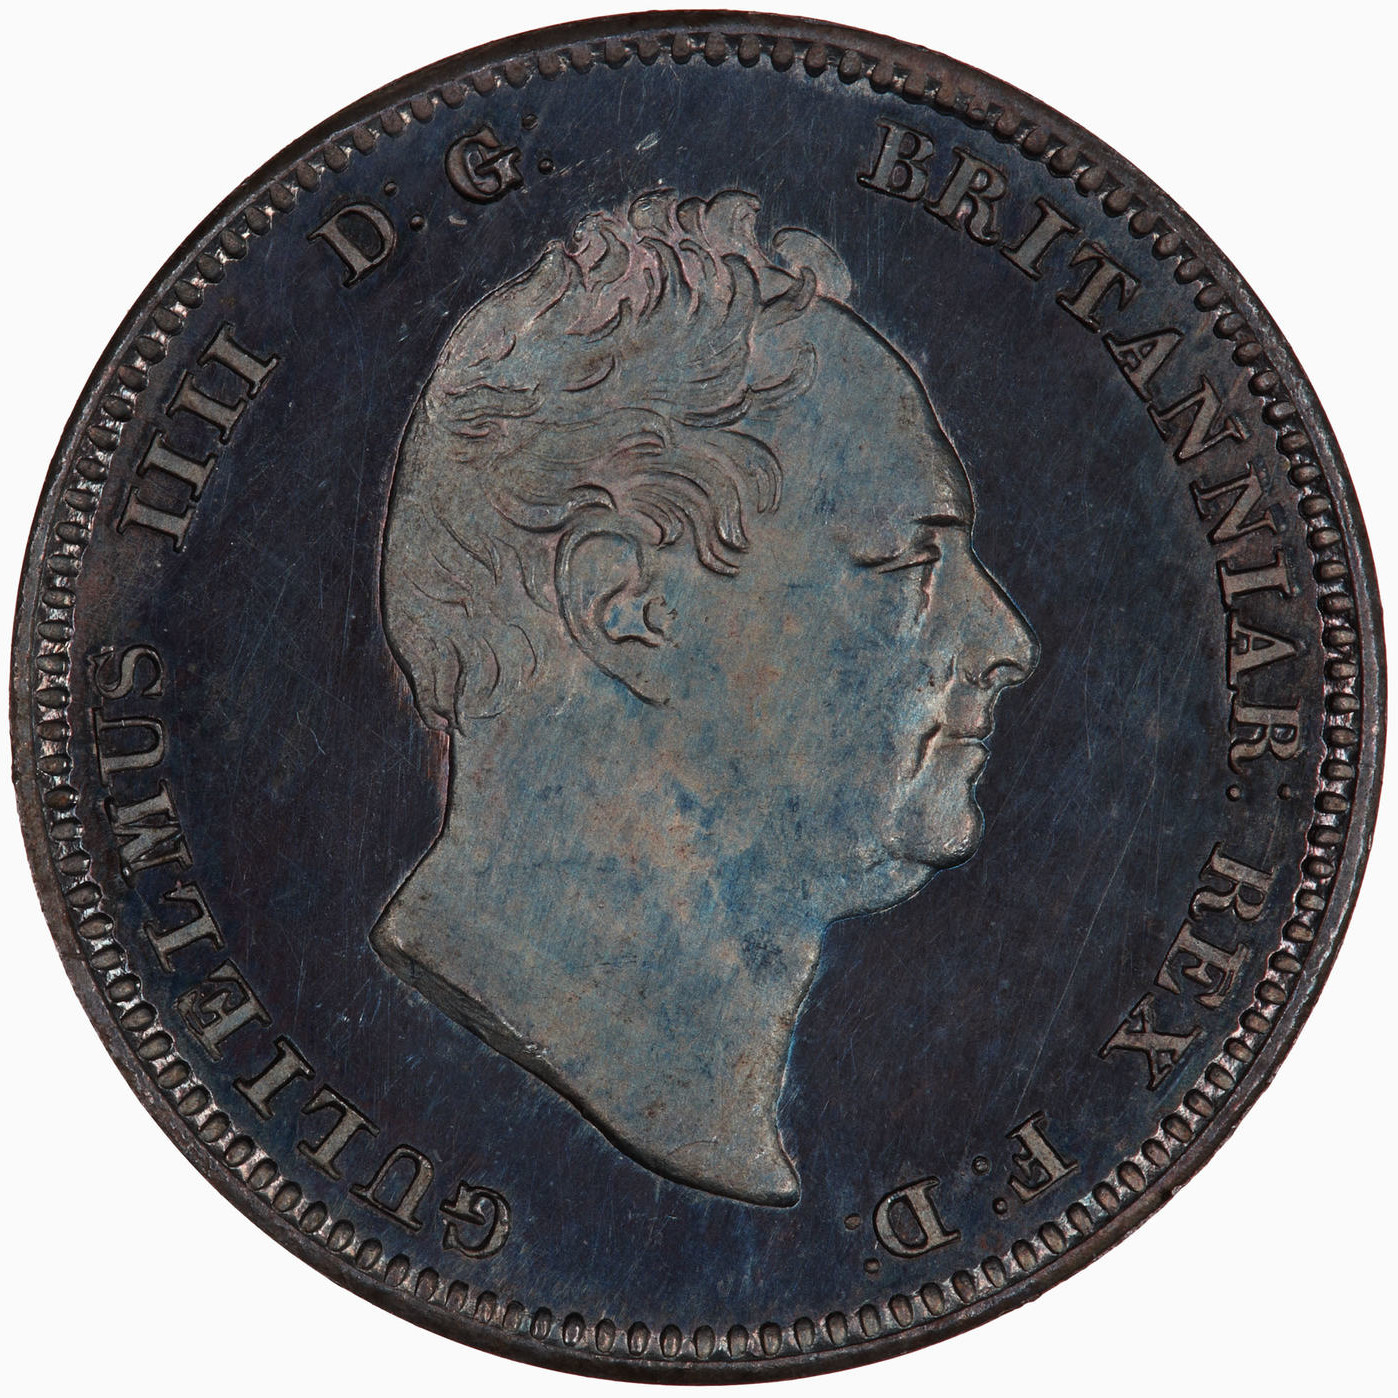 Threepence 1831 (Maundy): Photo Coin - Threepence (Maundy), William IV, Great Britain, 1831